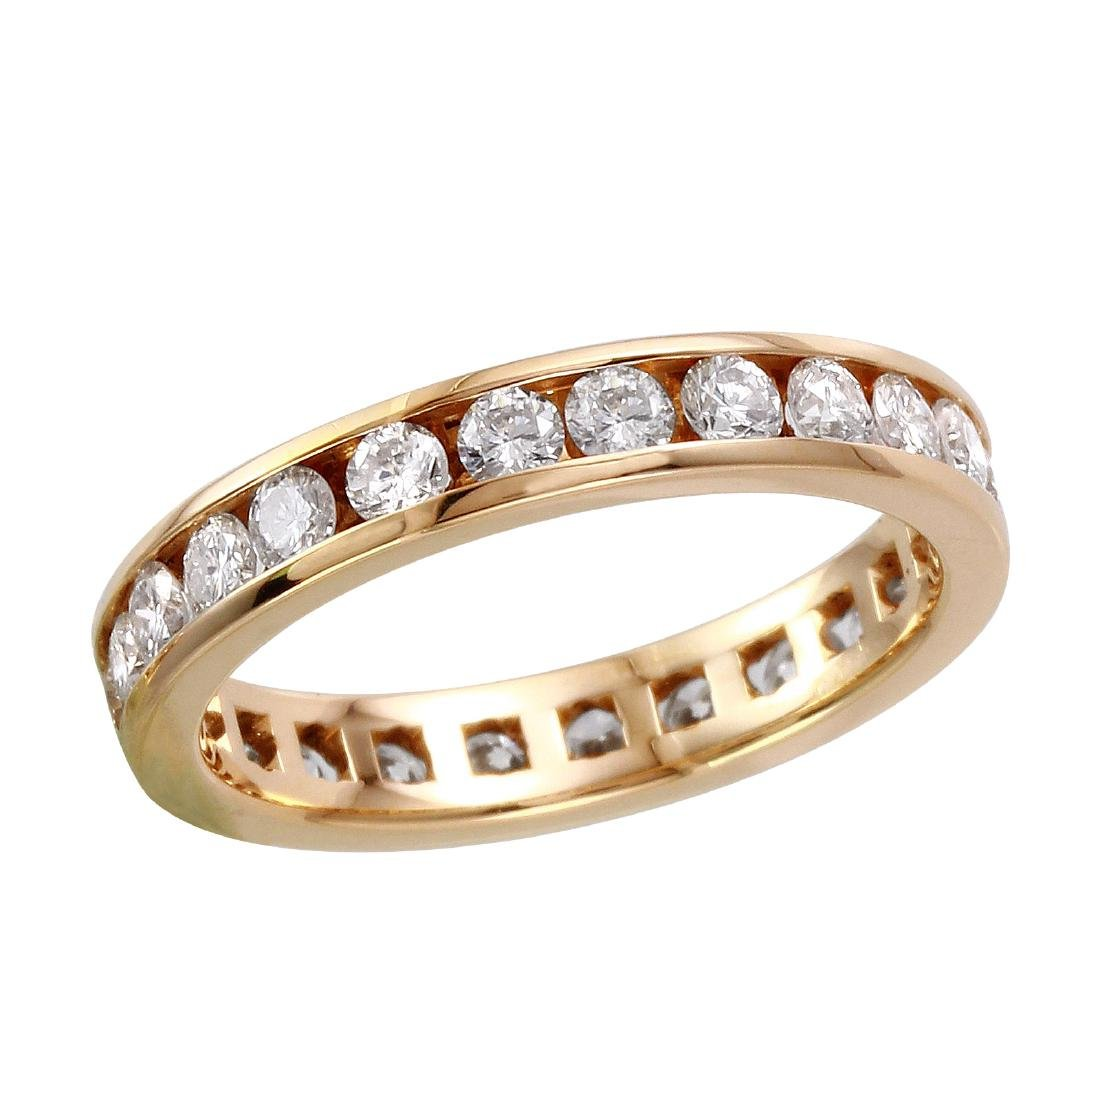 14KT Yellow Gold Diamond Eternity Ring